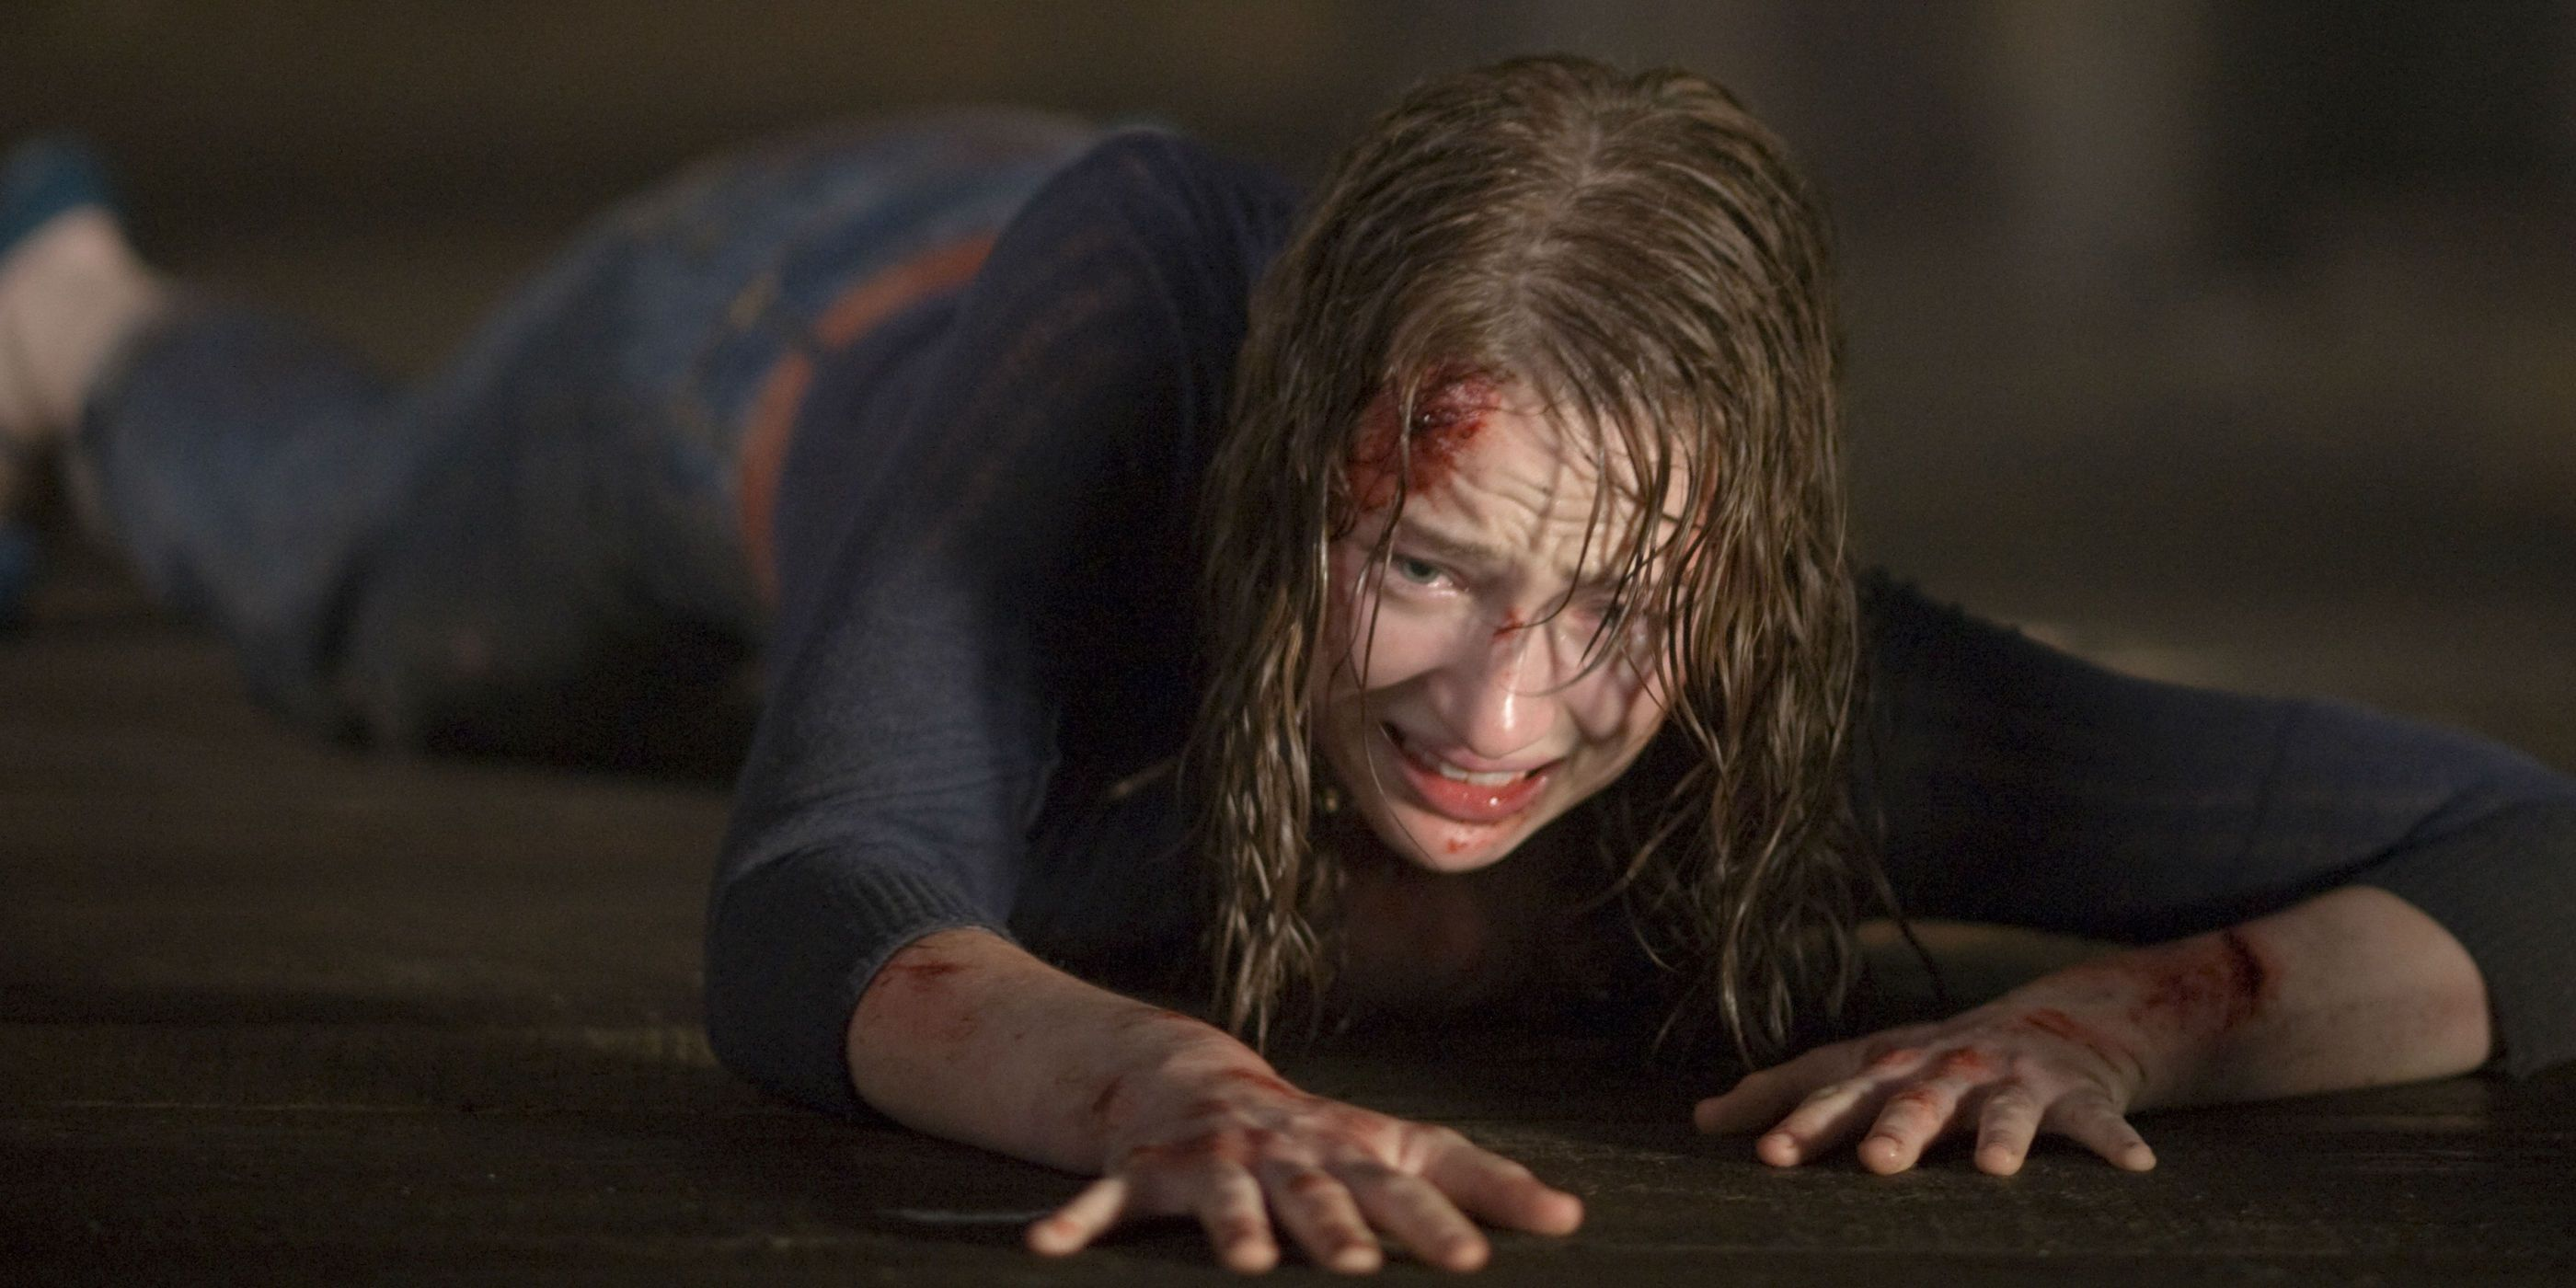 15 Worst Horror Movie Cliches That Just Keep Being Used